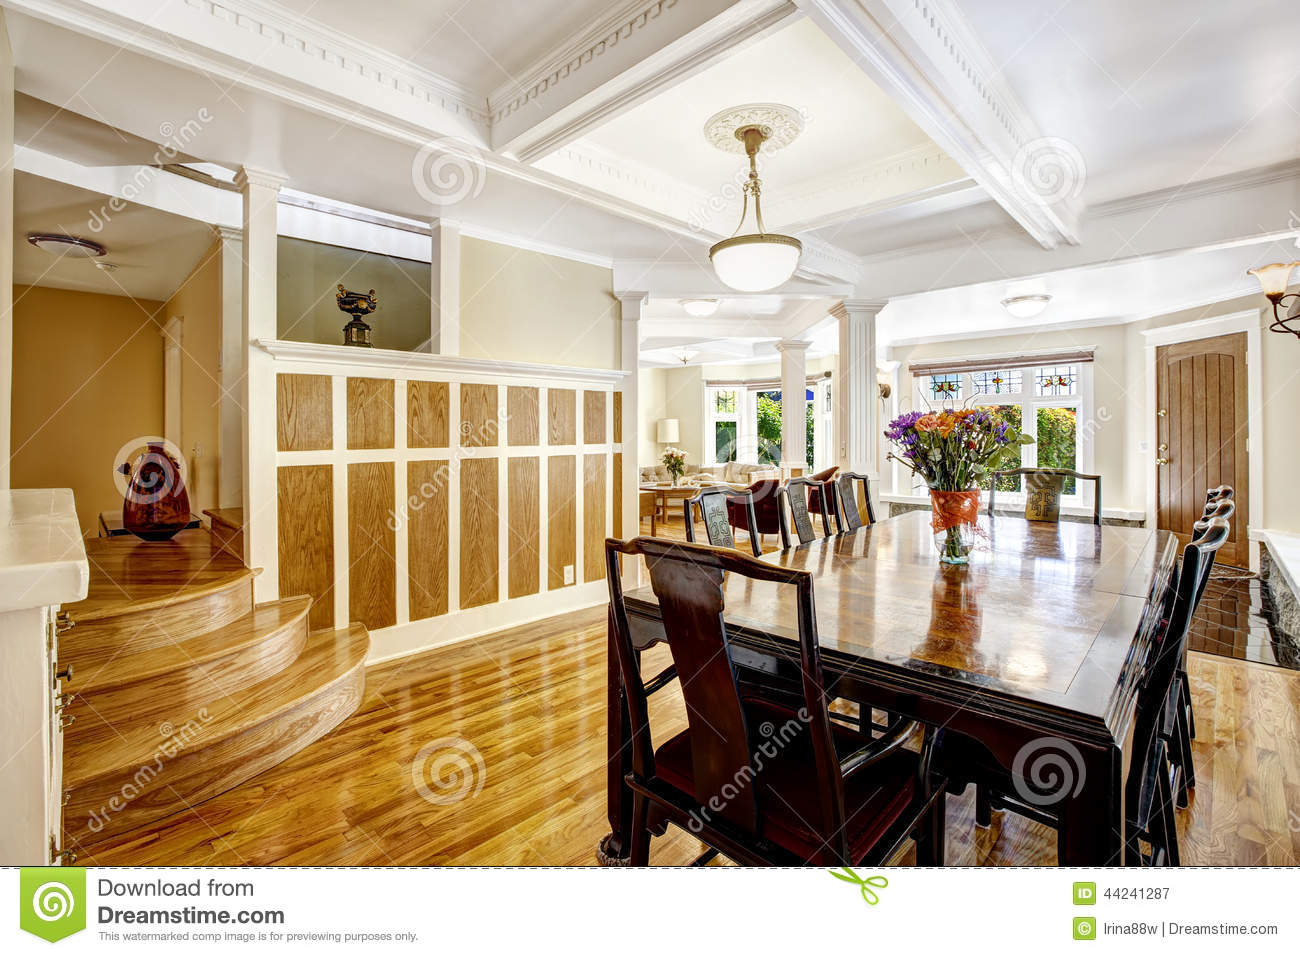 Empressive Dining Room Interior Luxury House With Wood  : empressive dining room interior luxury house wood trim spacious hardwood floor wall coffered ceiling brown white 44241287 from dreamstime.com size 1300 x 956 jpeg 190kB